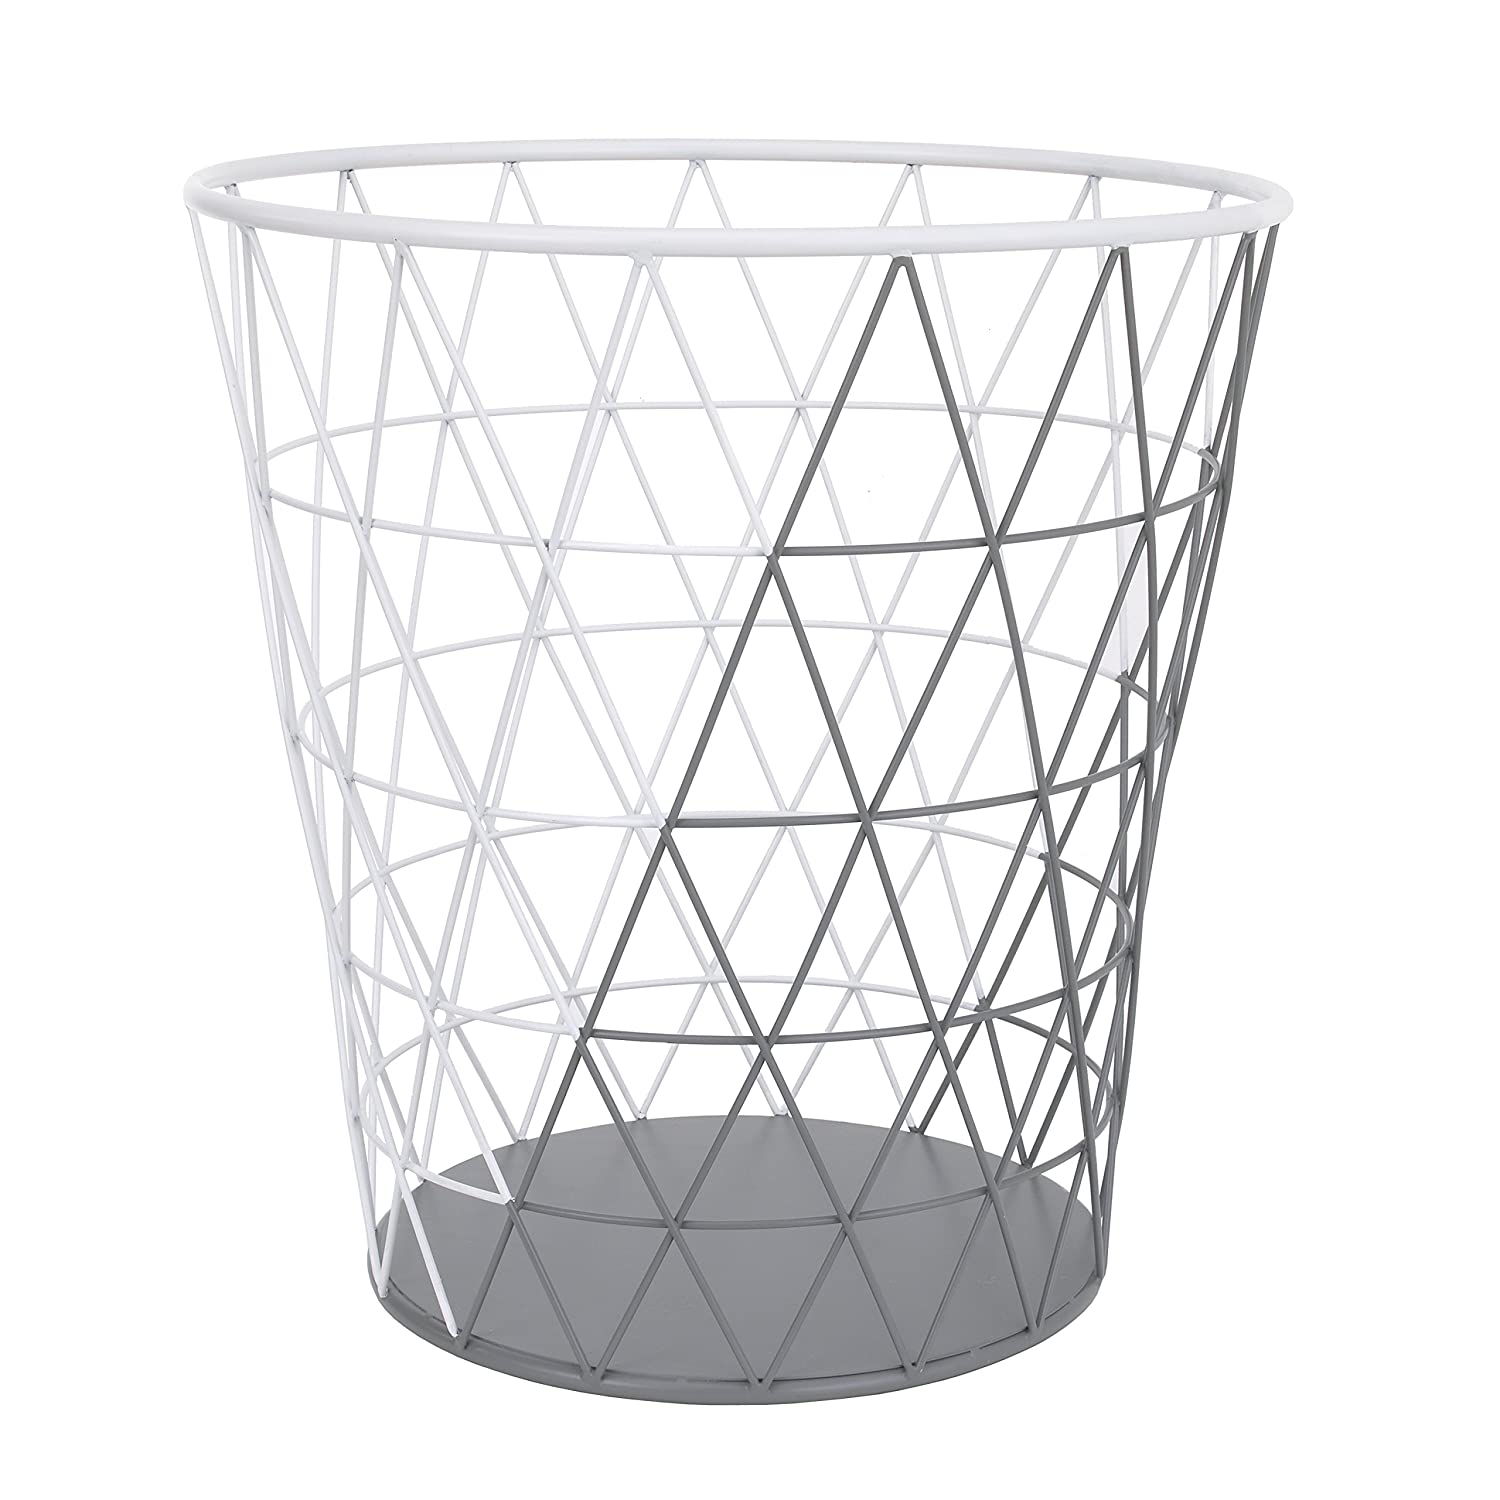 Petunia Pickle Bottom Southwest Skies Wire Clothes Hamper, Gray/White Crown Crafts Infant Products 7543188